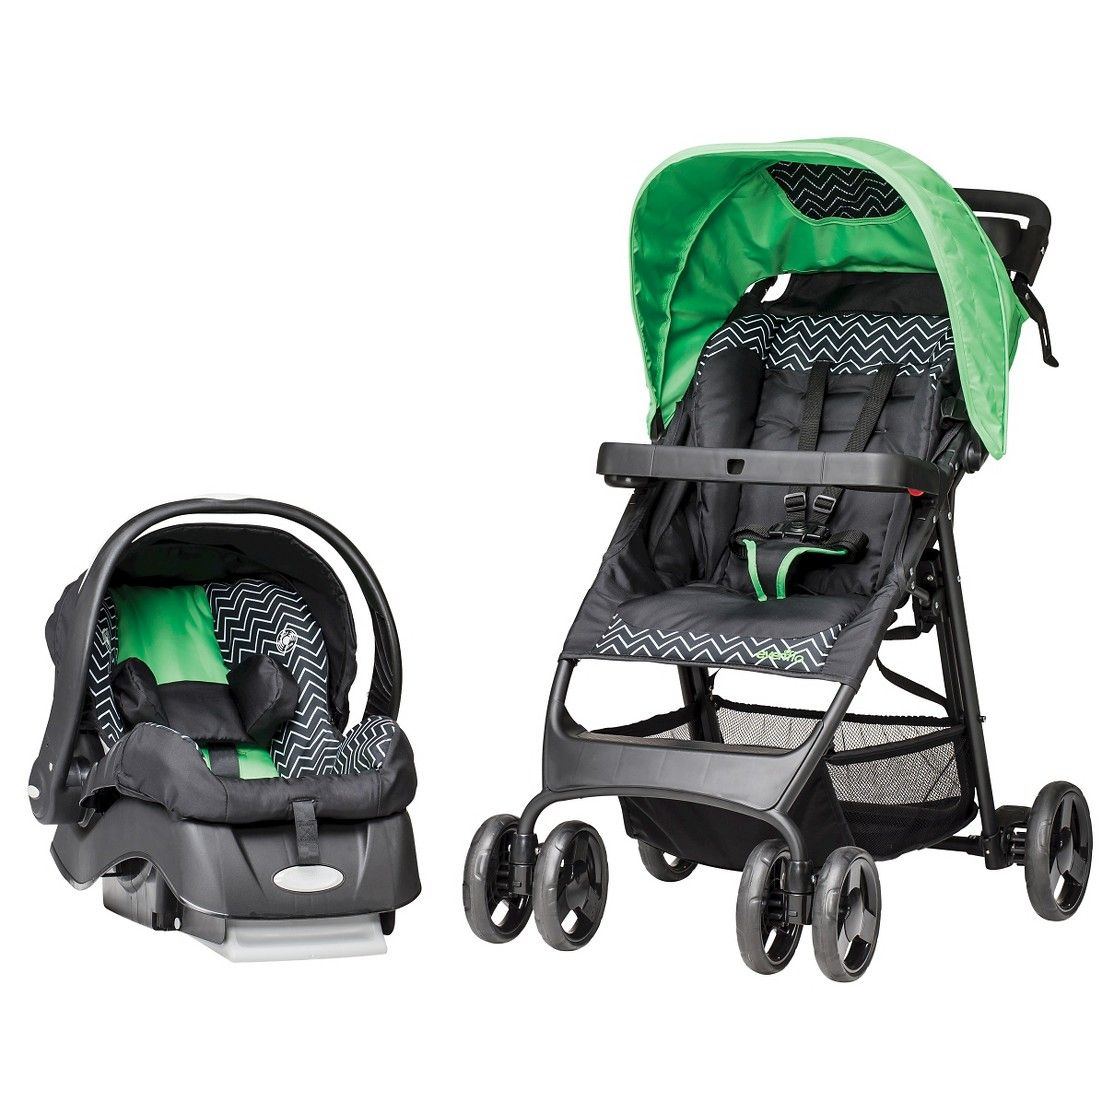 Evenflo FlexLite Travel System Chevron Travel system